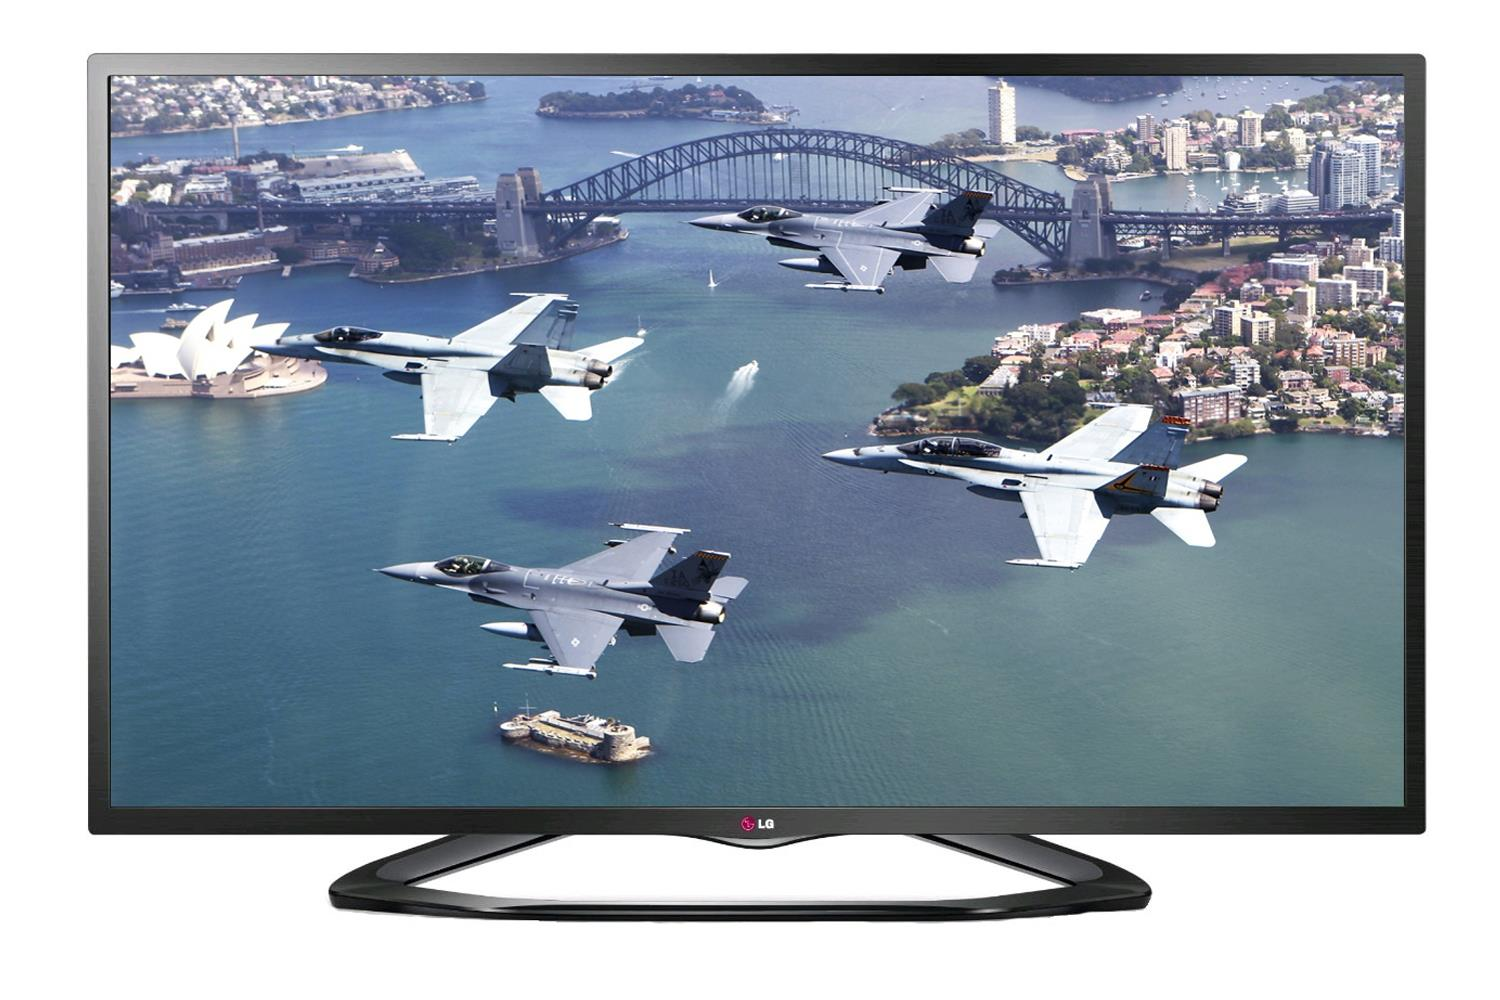 Lg 39LA620V 39 Inch 3D Smart LED TV